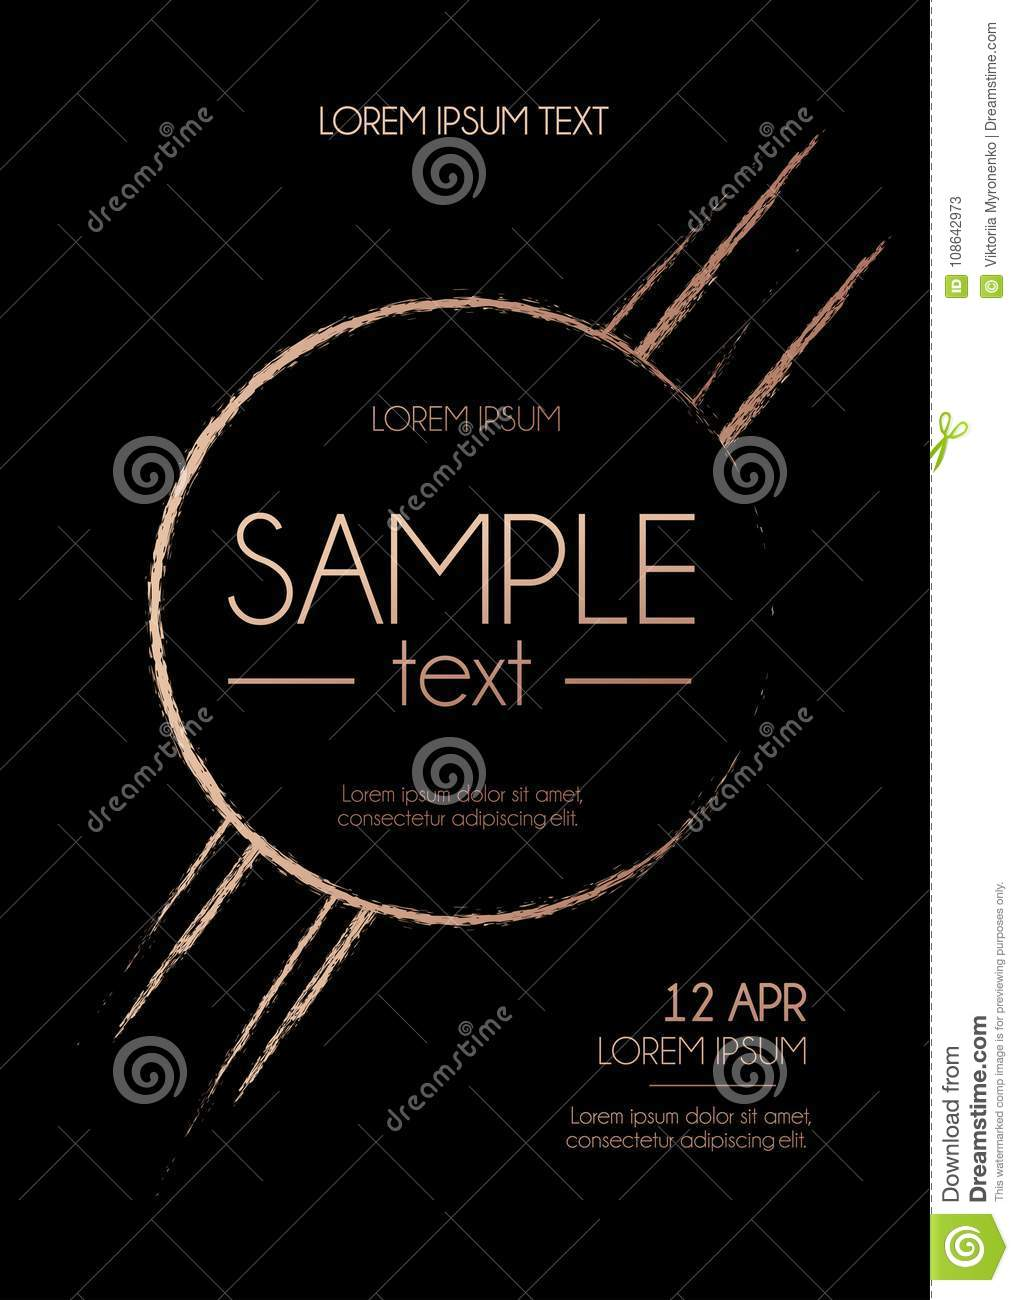 Brush Stroke Rose Gold Design Template Abstract Design For